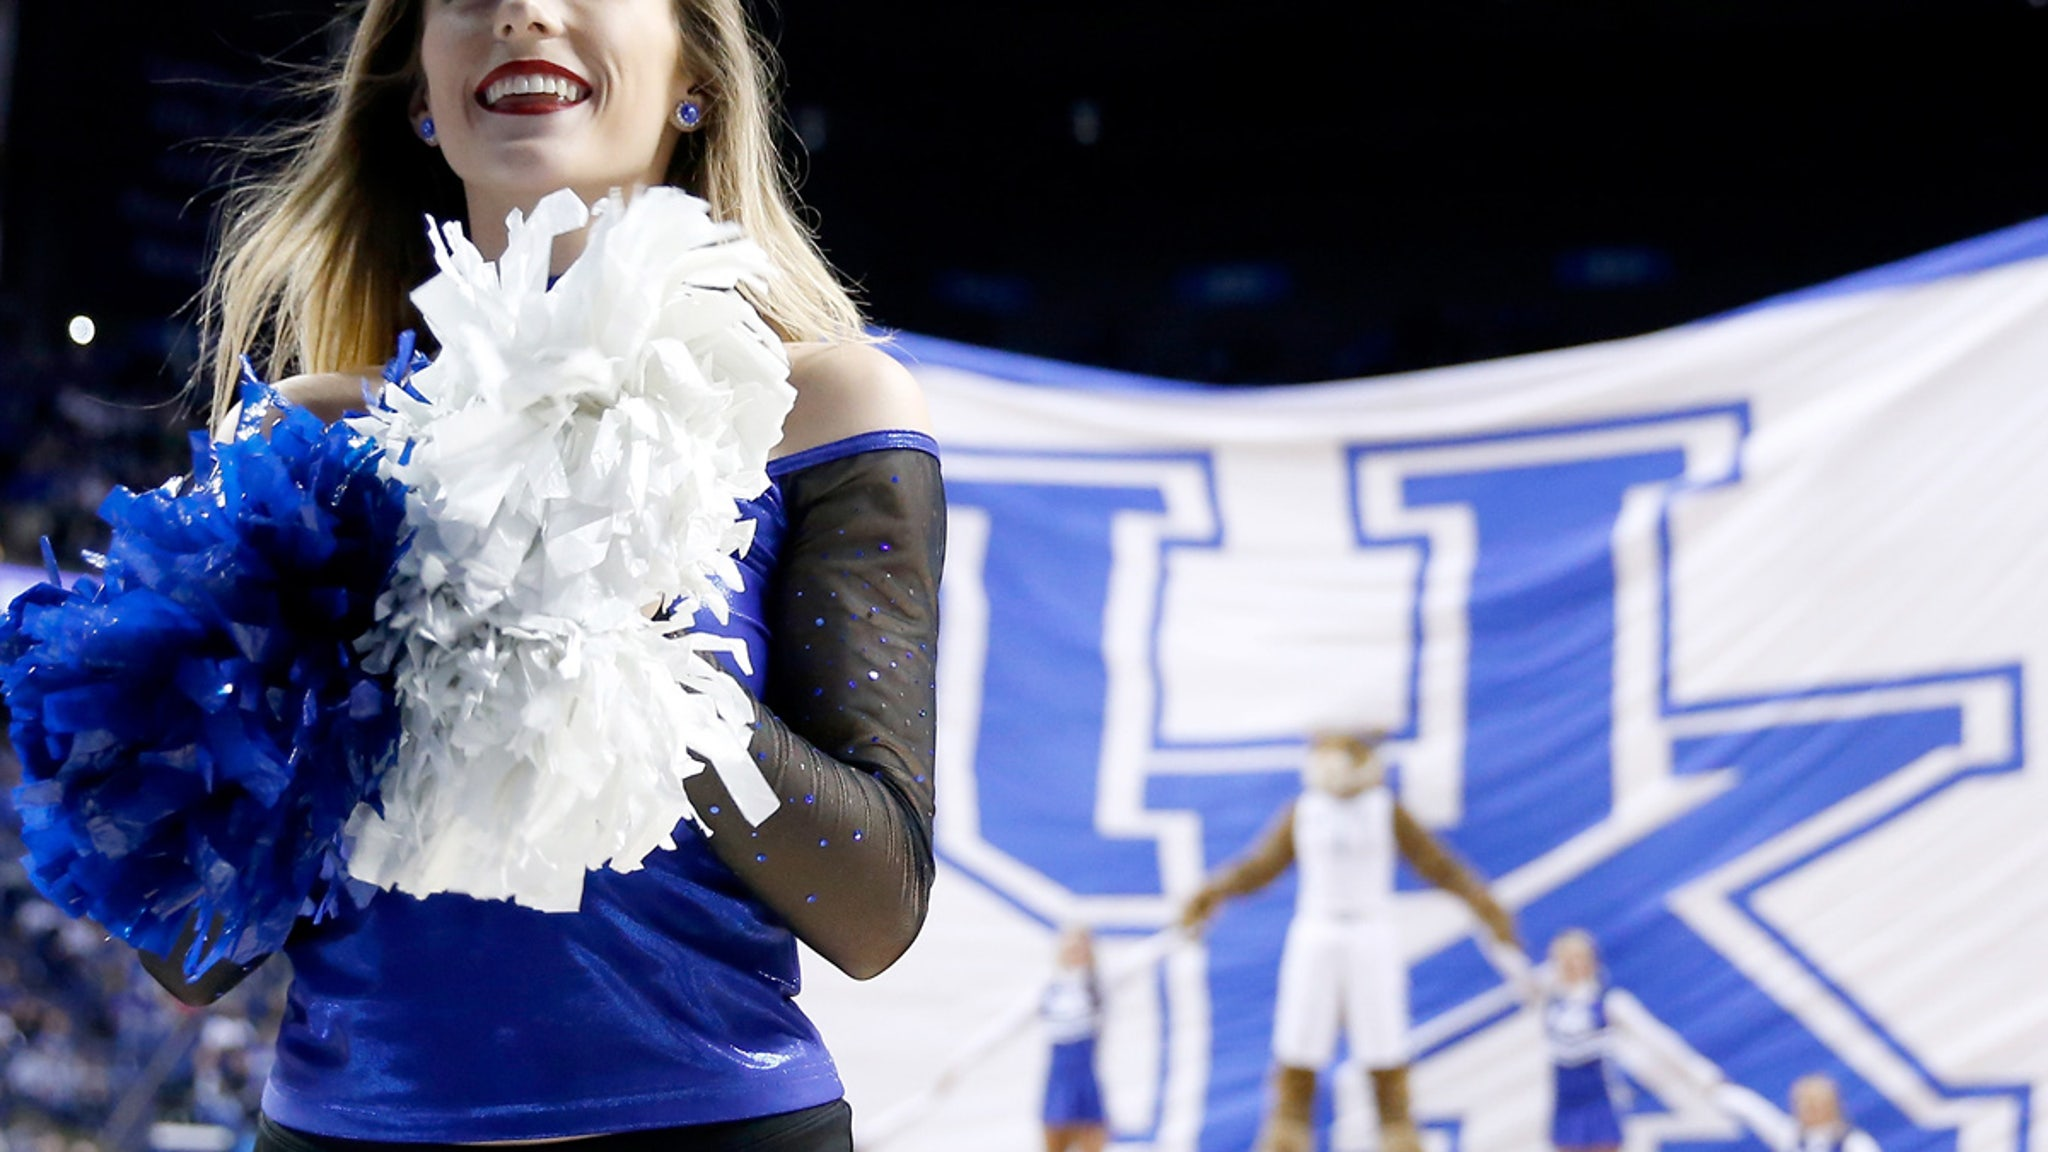 Kentucky Fires Cheerleading Coaches Over Wild Hazing, Nudity Allegations